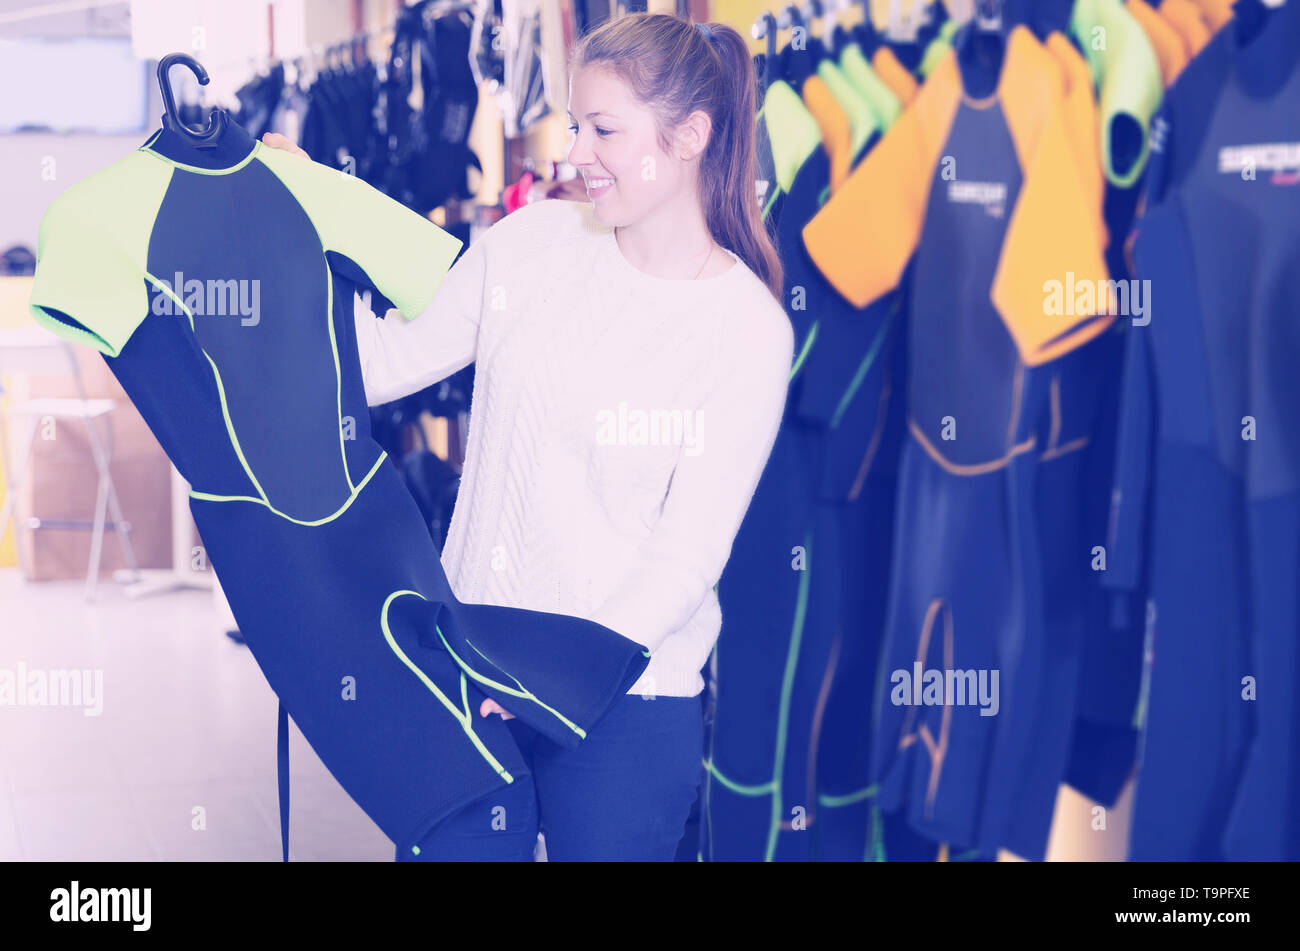 woman is satisfied of new costumes for diving in the store. - Stock Image